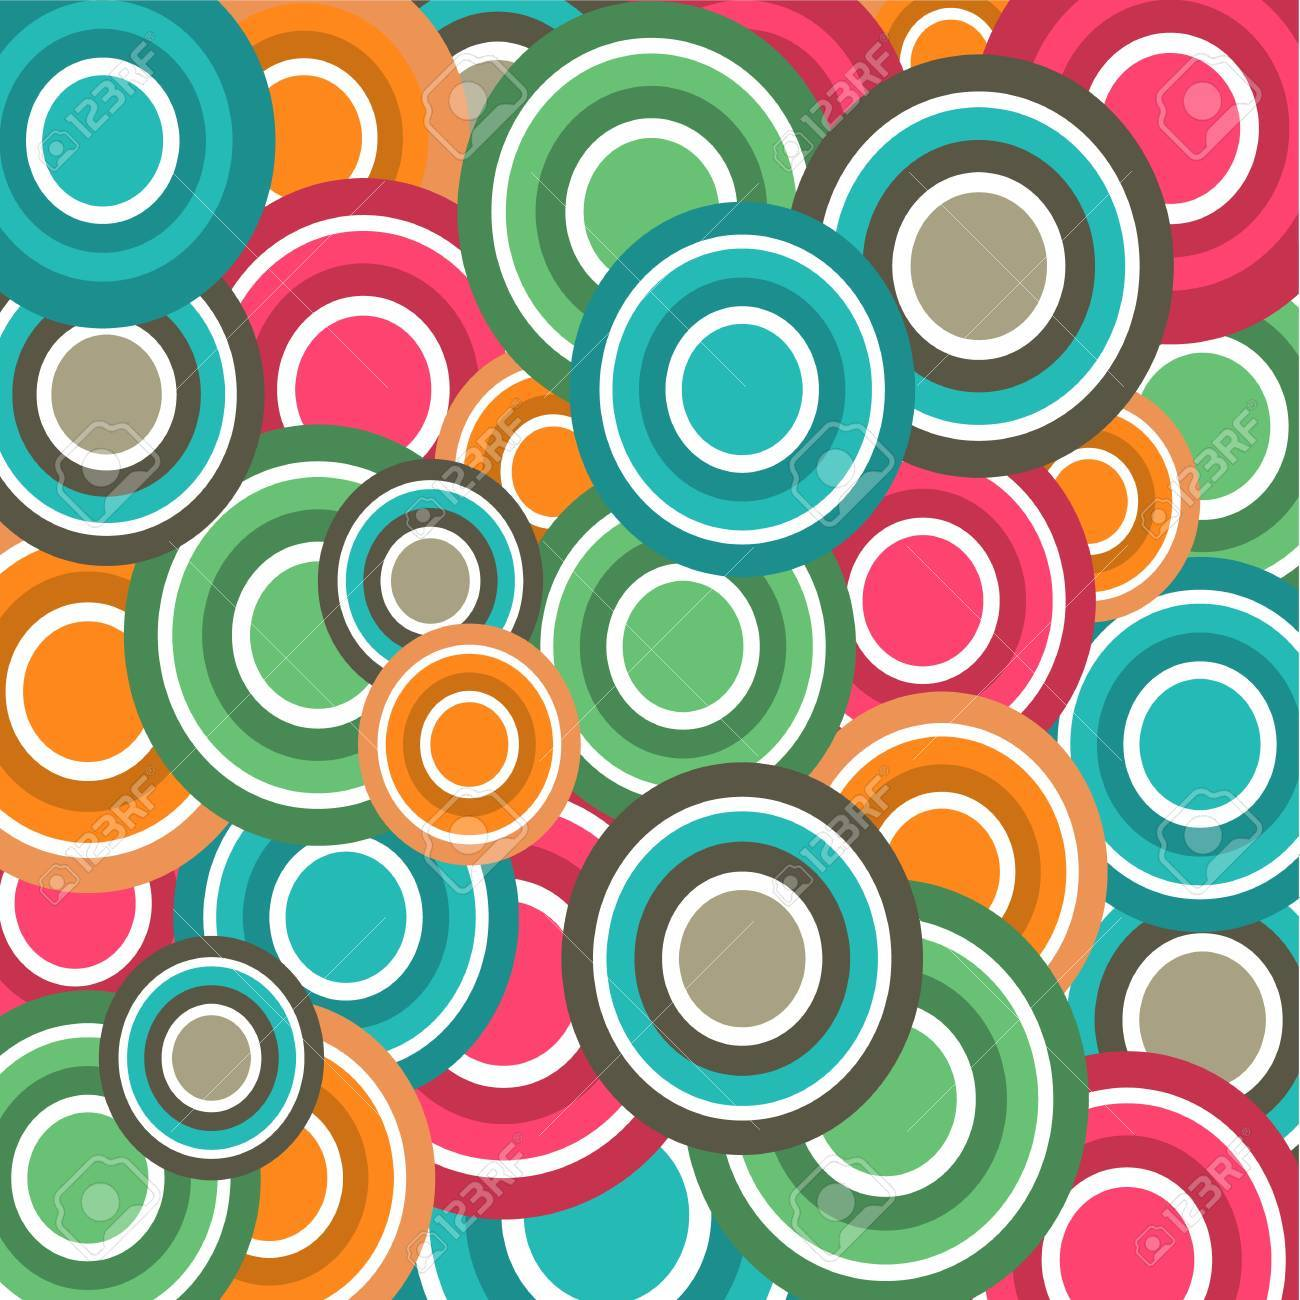 Colorful Circle Doodles Seamless Pattern  Illustration Background Stock Vector - 19601736